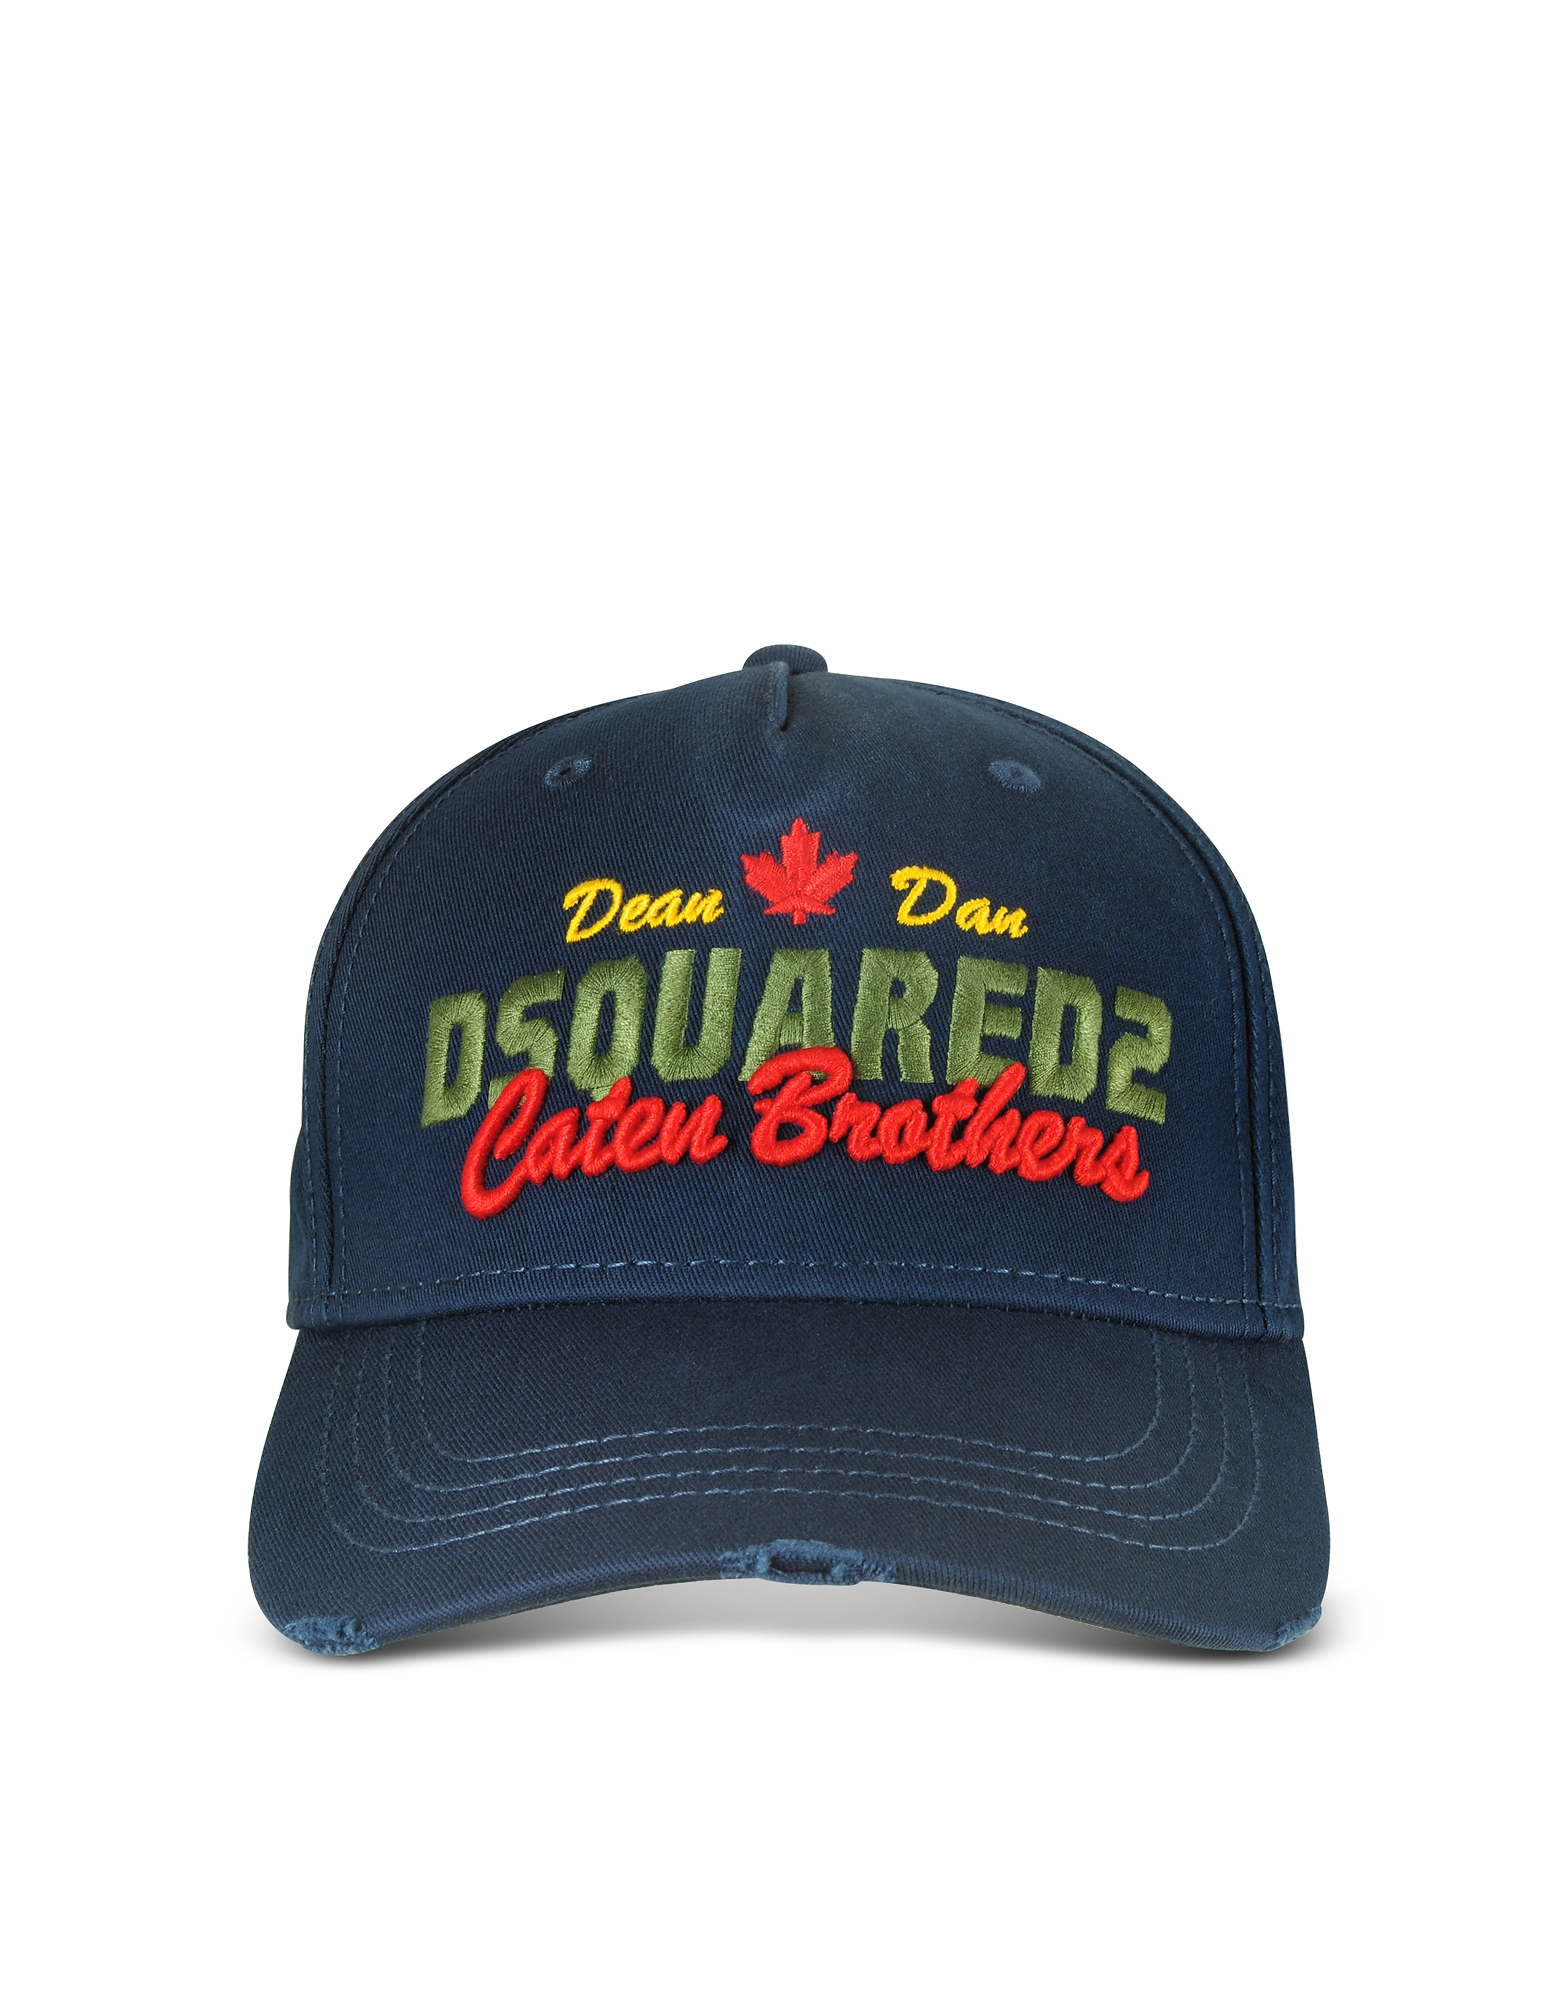 DSquared2 Men's Hats, Navy Blue Embroidered Cotton Baseball Cap